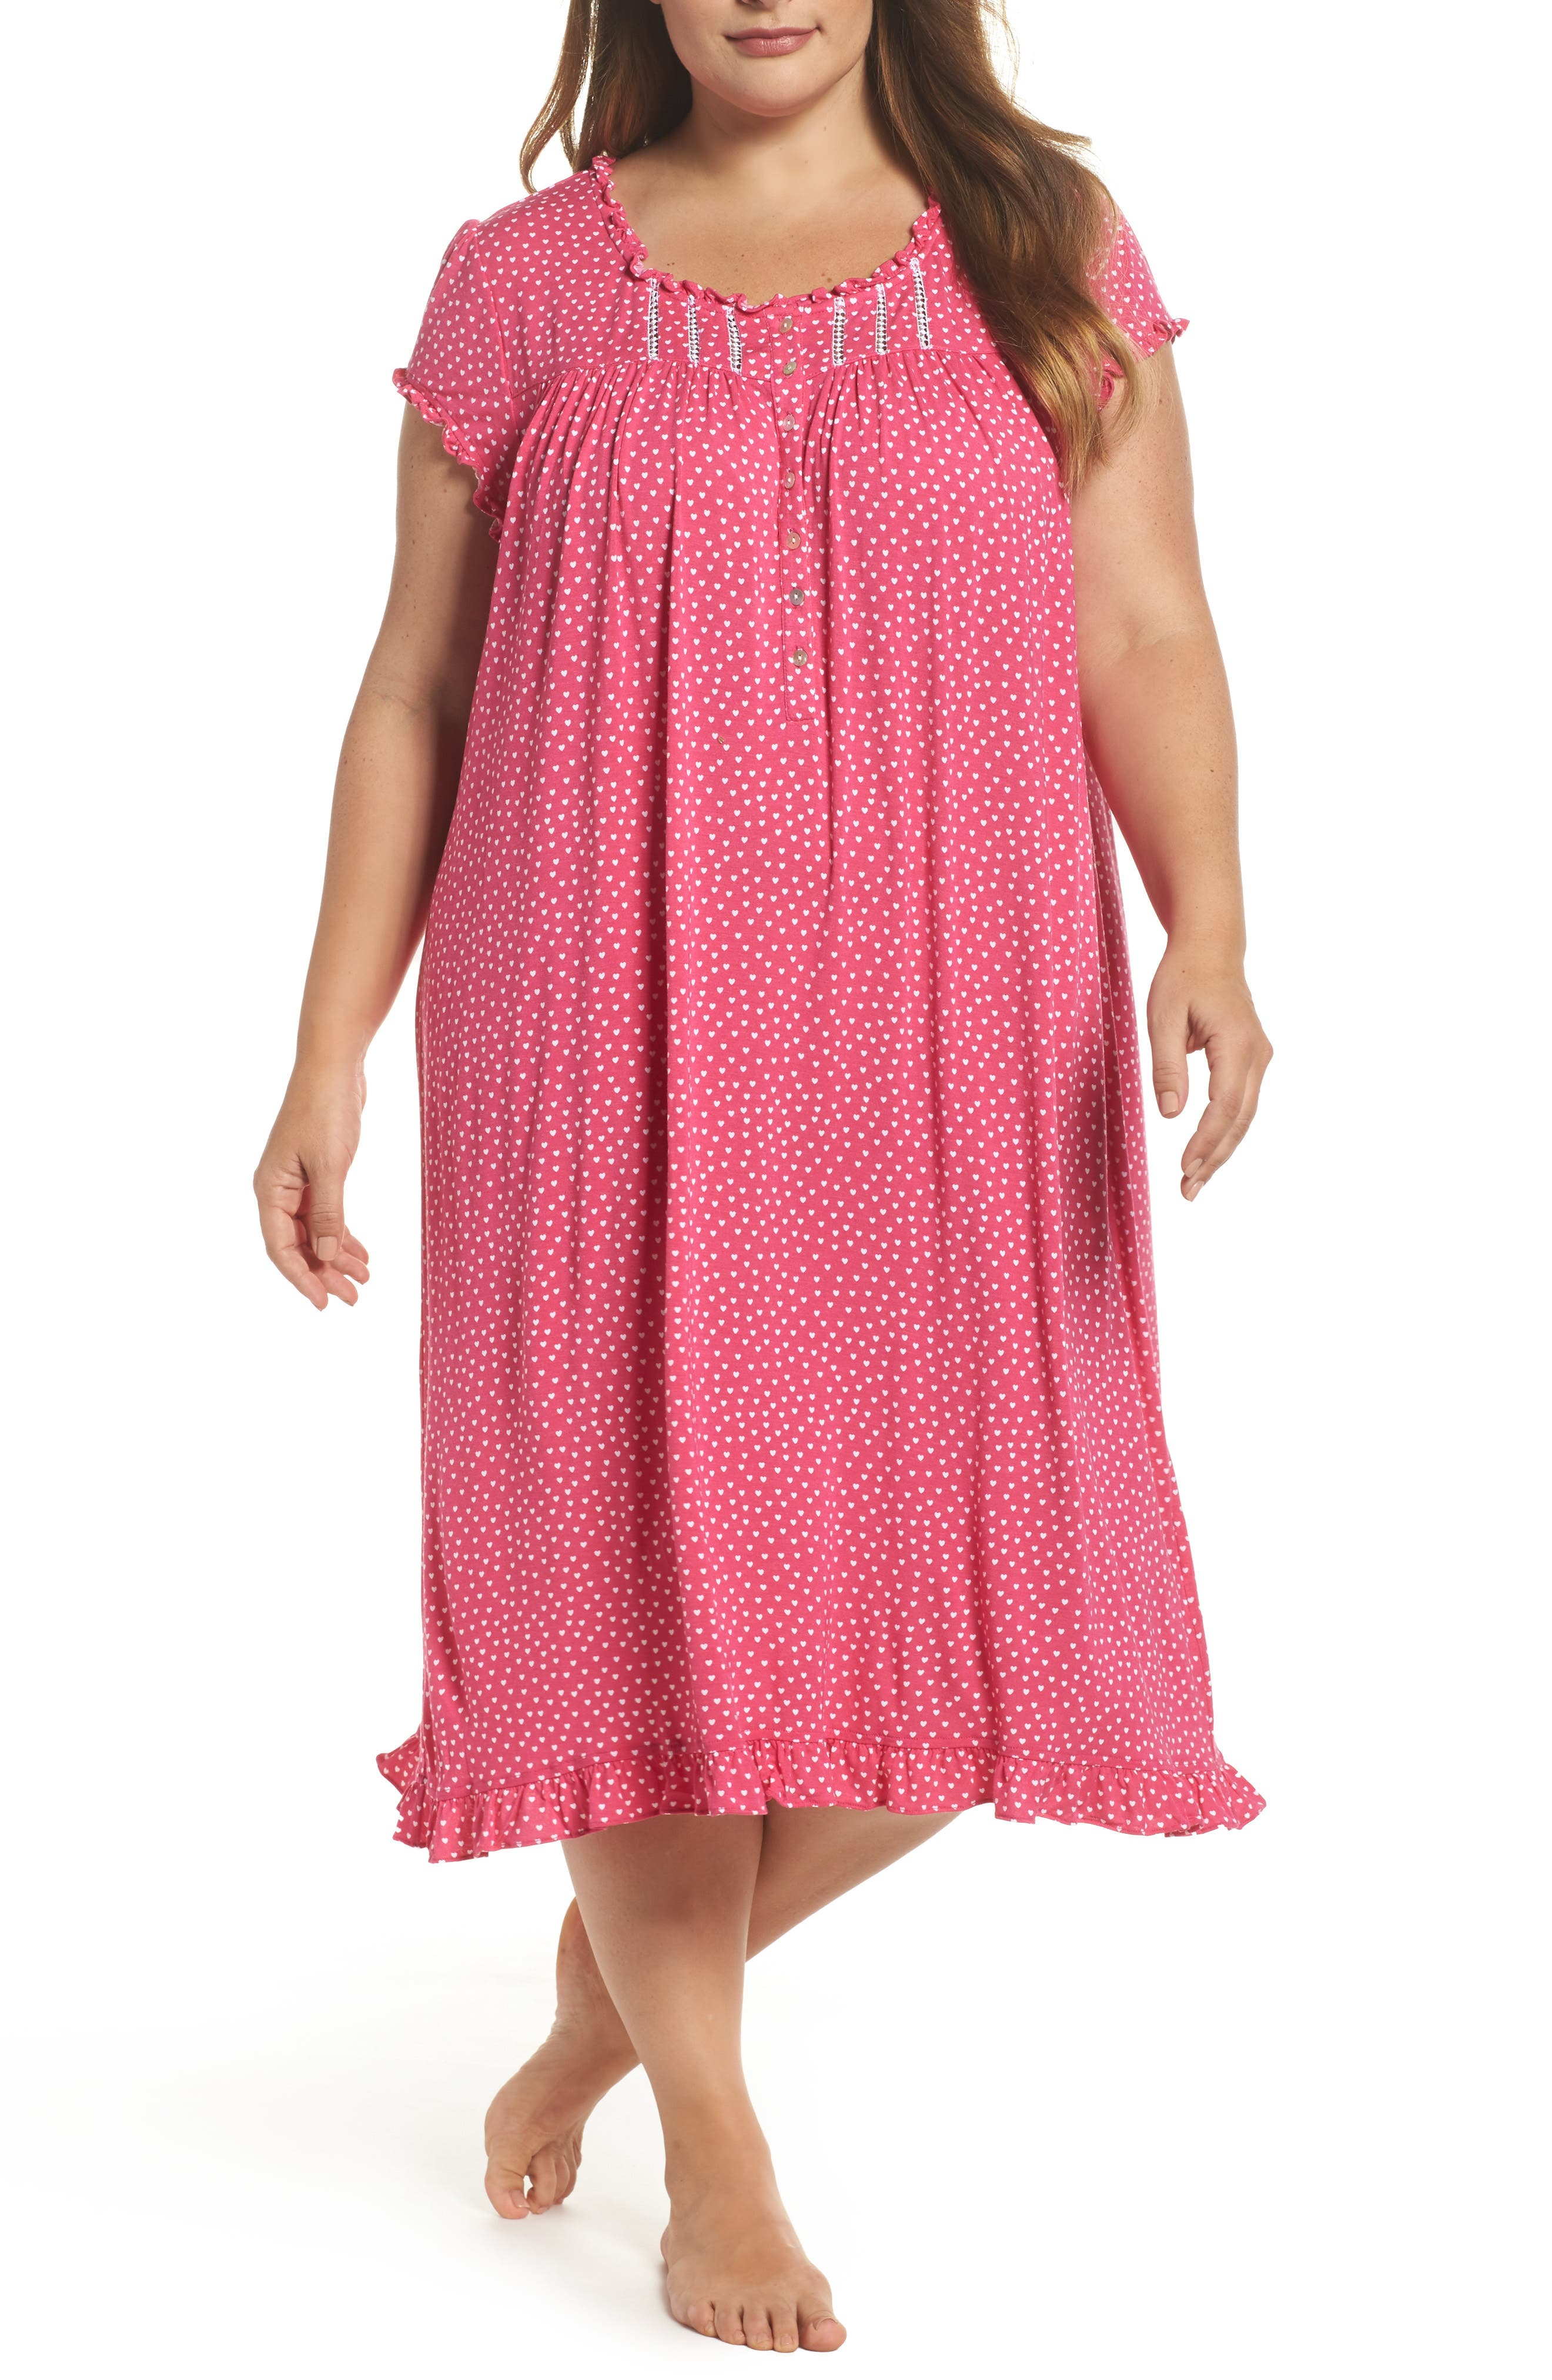 Modal Jersey Nightgown,                         Main,                         color, Peony White Hearts